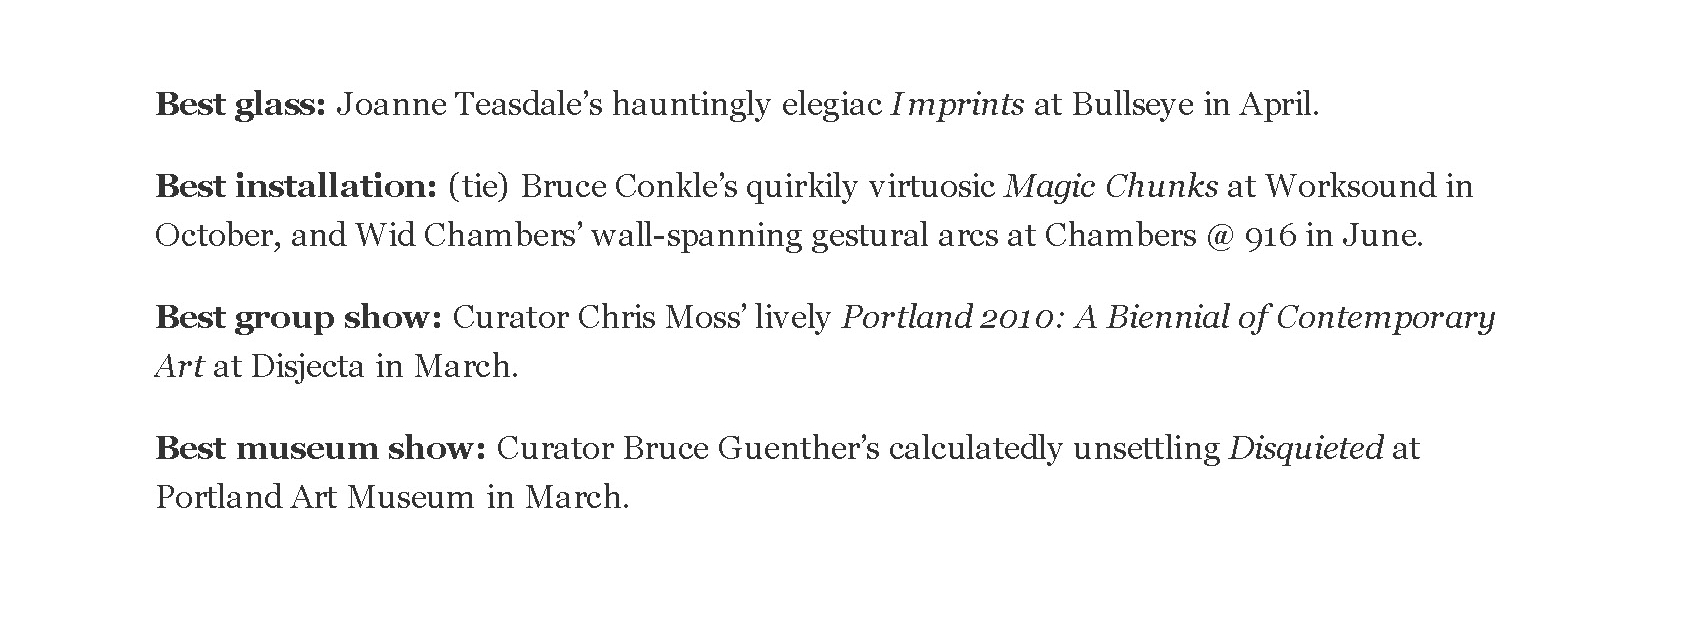 WWEEK_Portland_Best_Of_2010_Page_2.jpg